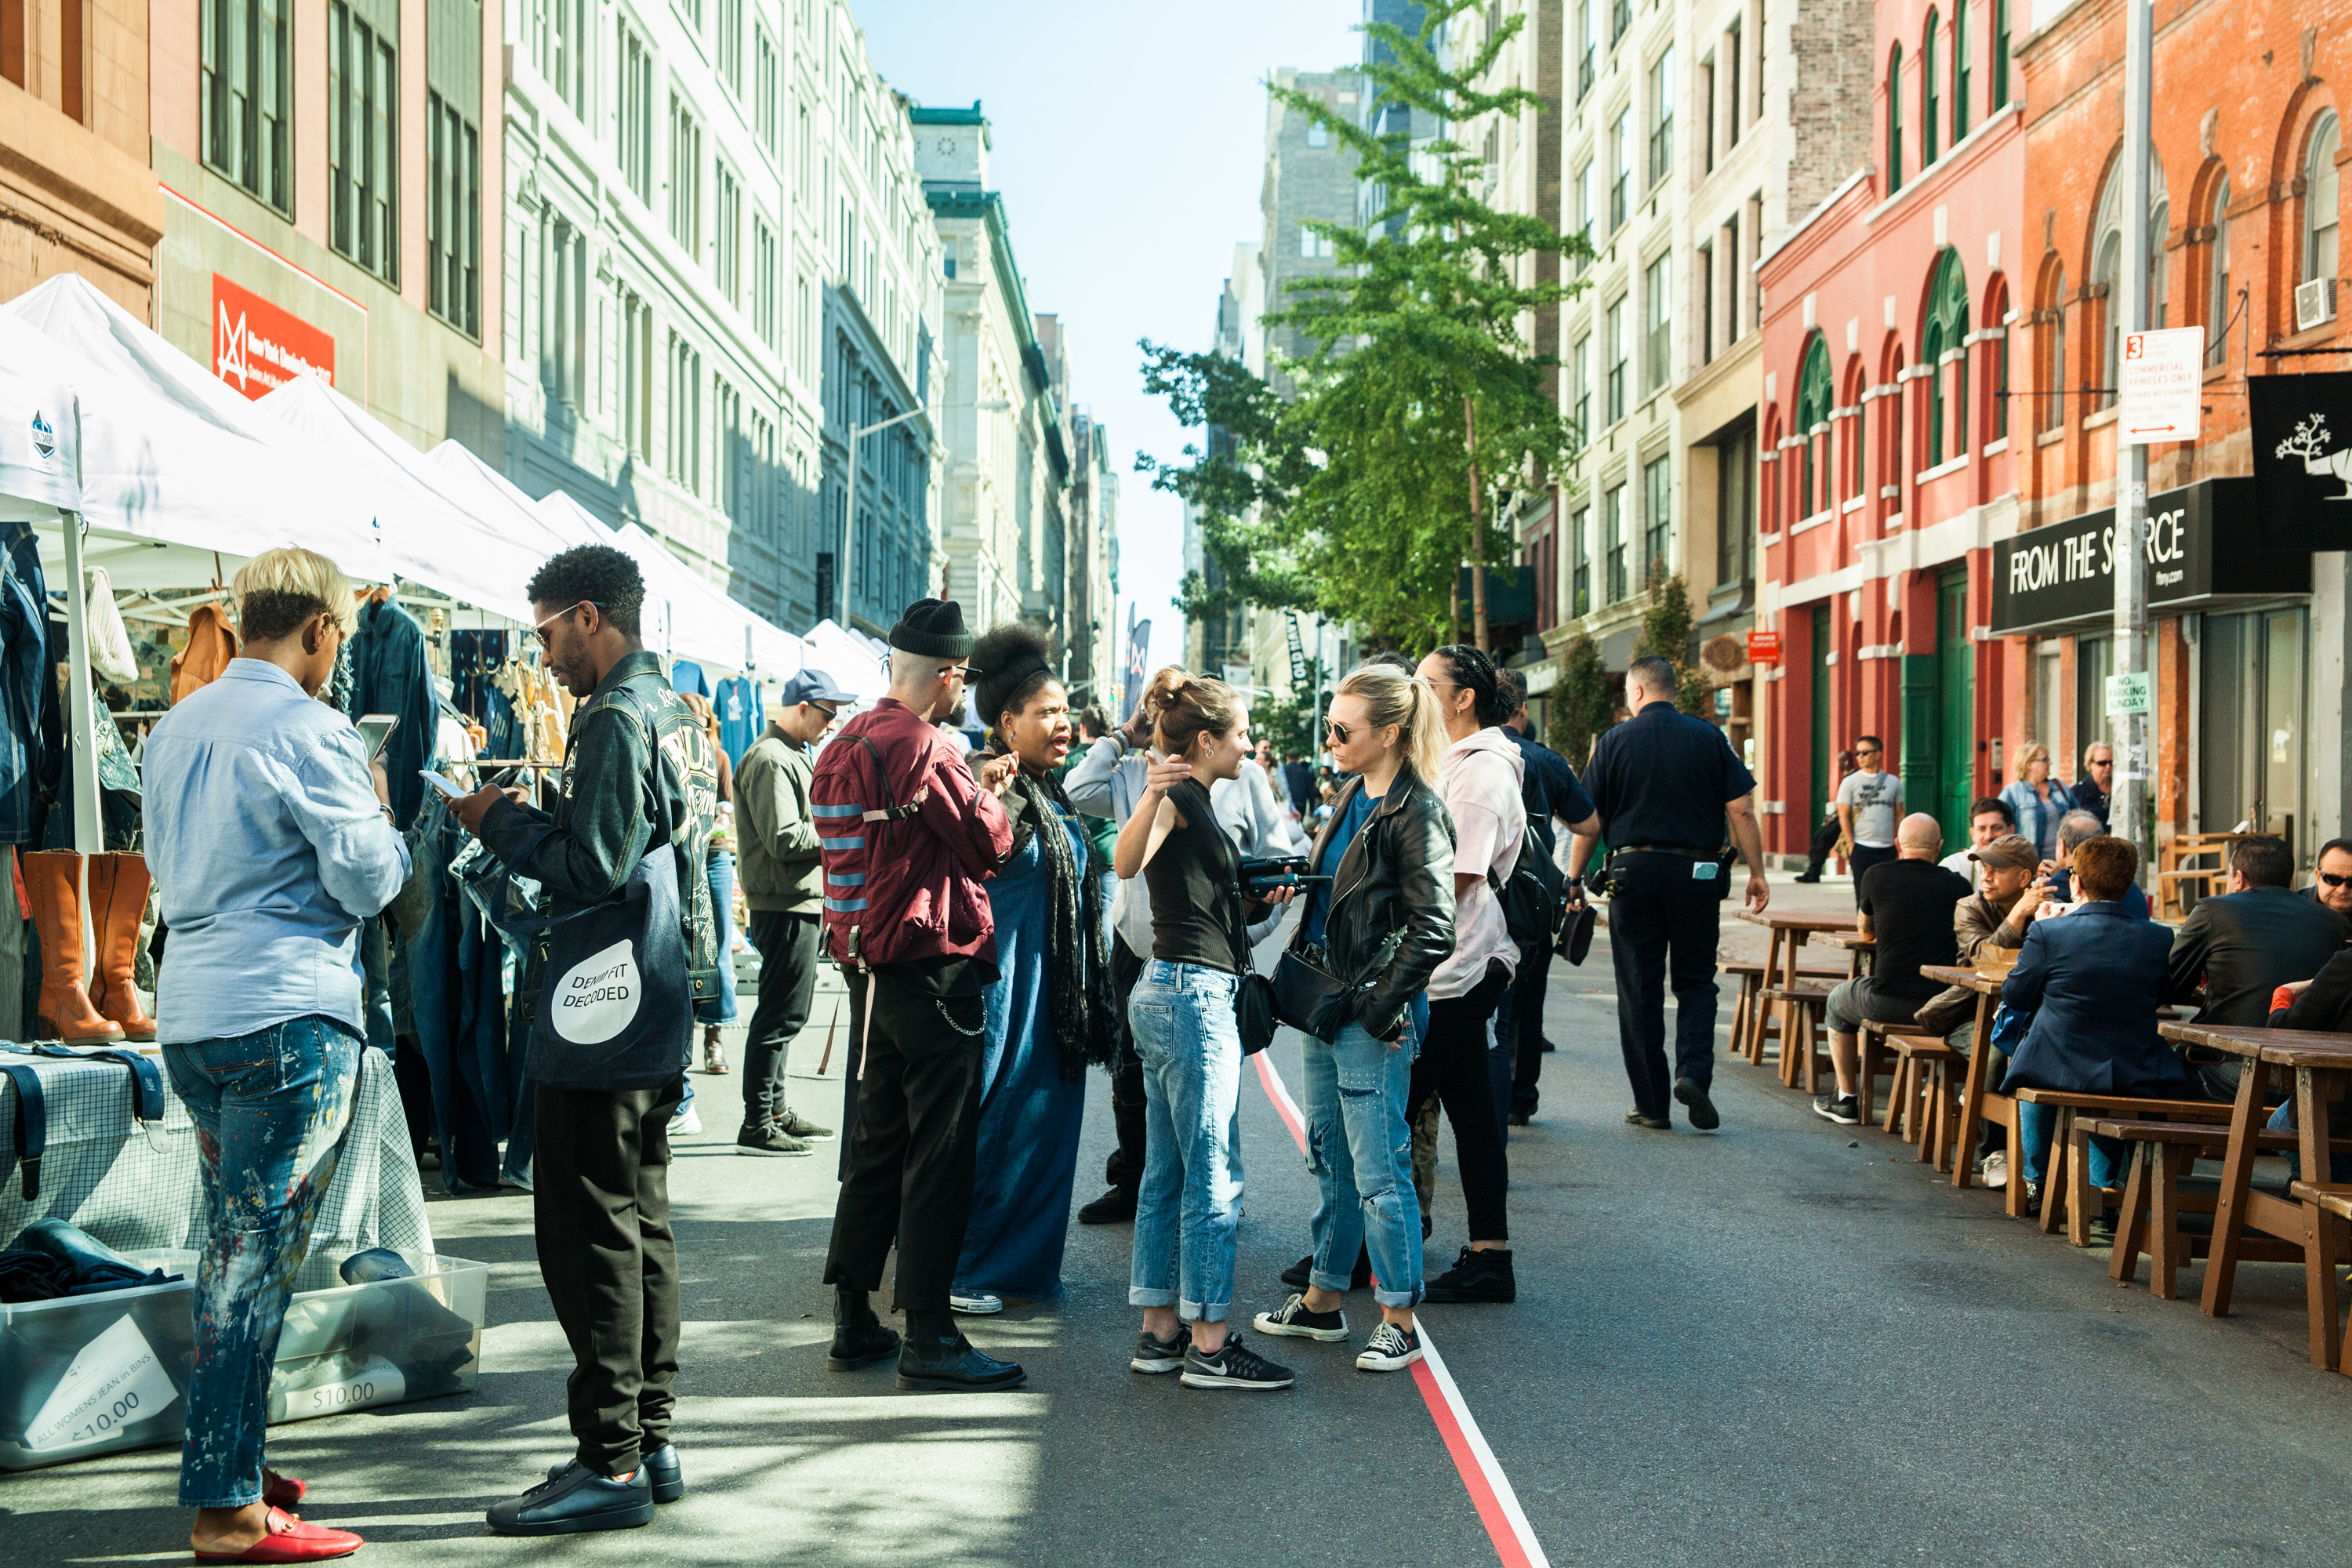 New York Denim Days includes a one-day street fair that is open to the public and features vintage dealers, artisans, food trucks and live music.